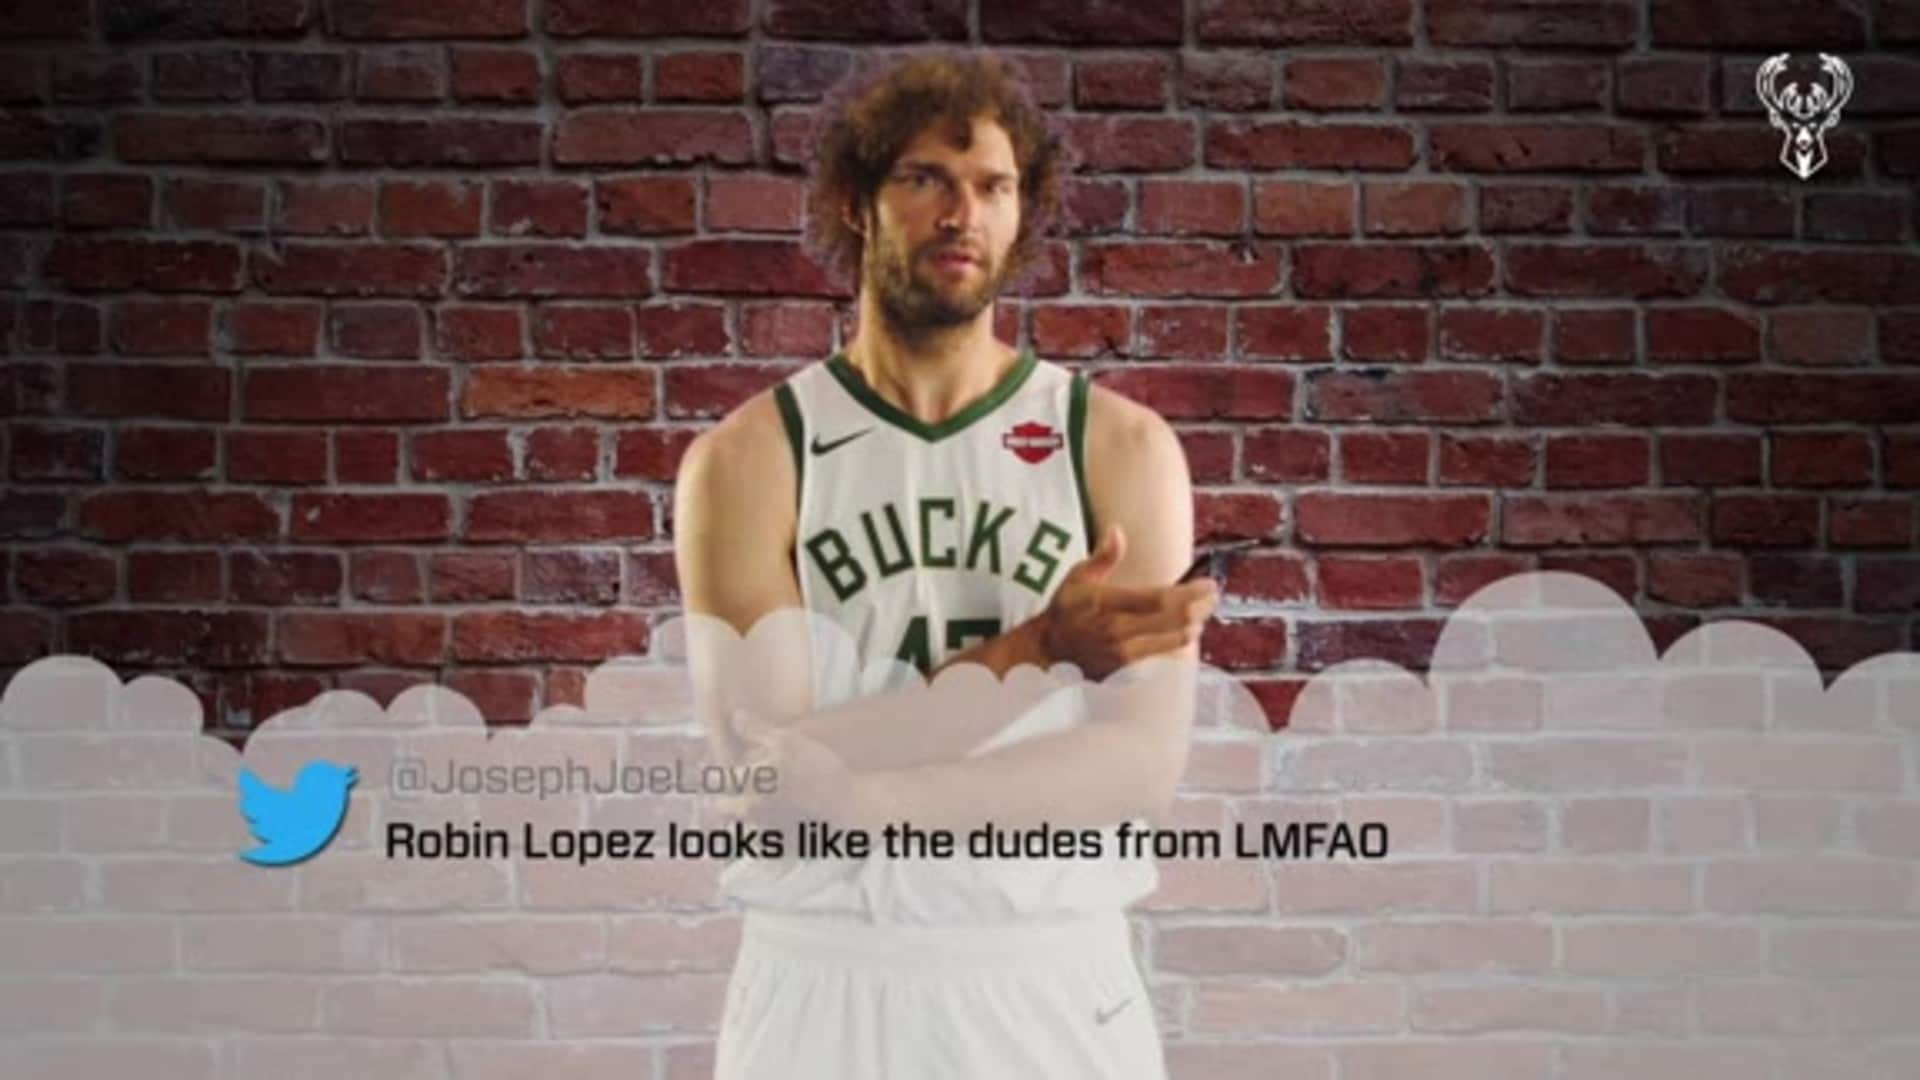 Milwaukee Bucks: Mean Tweets 2.0